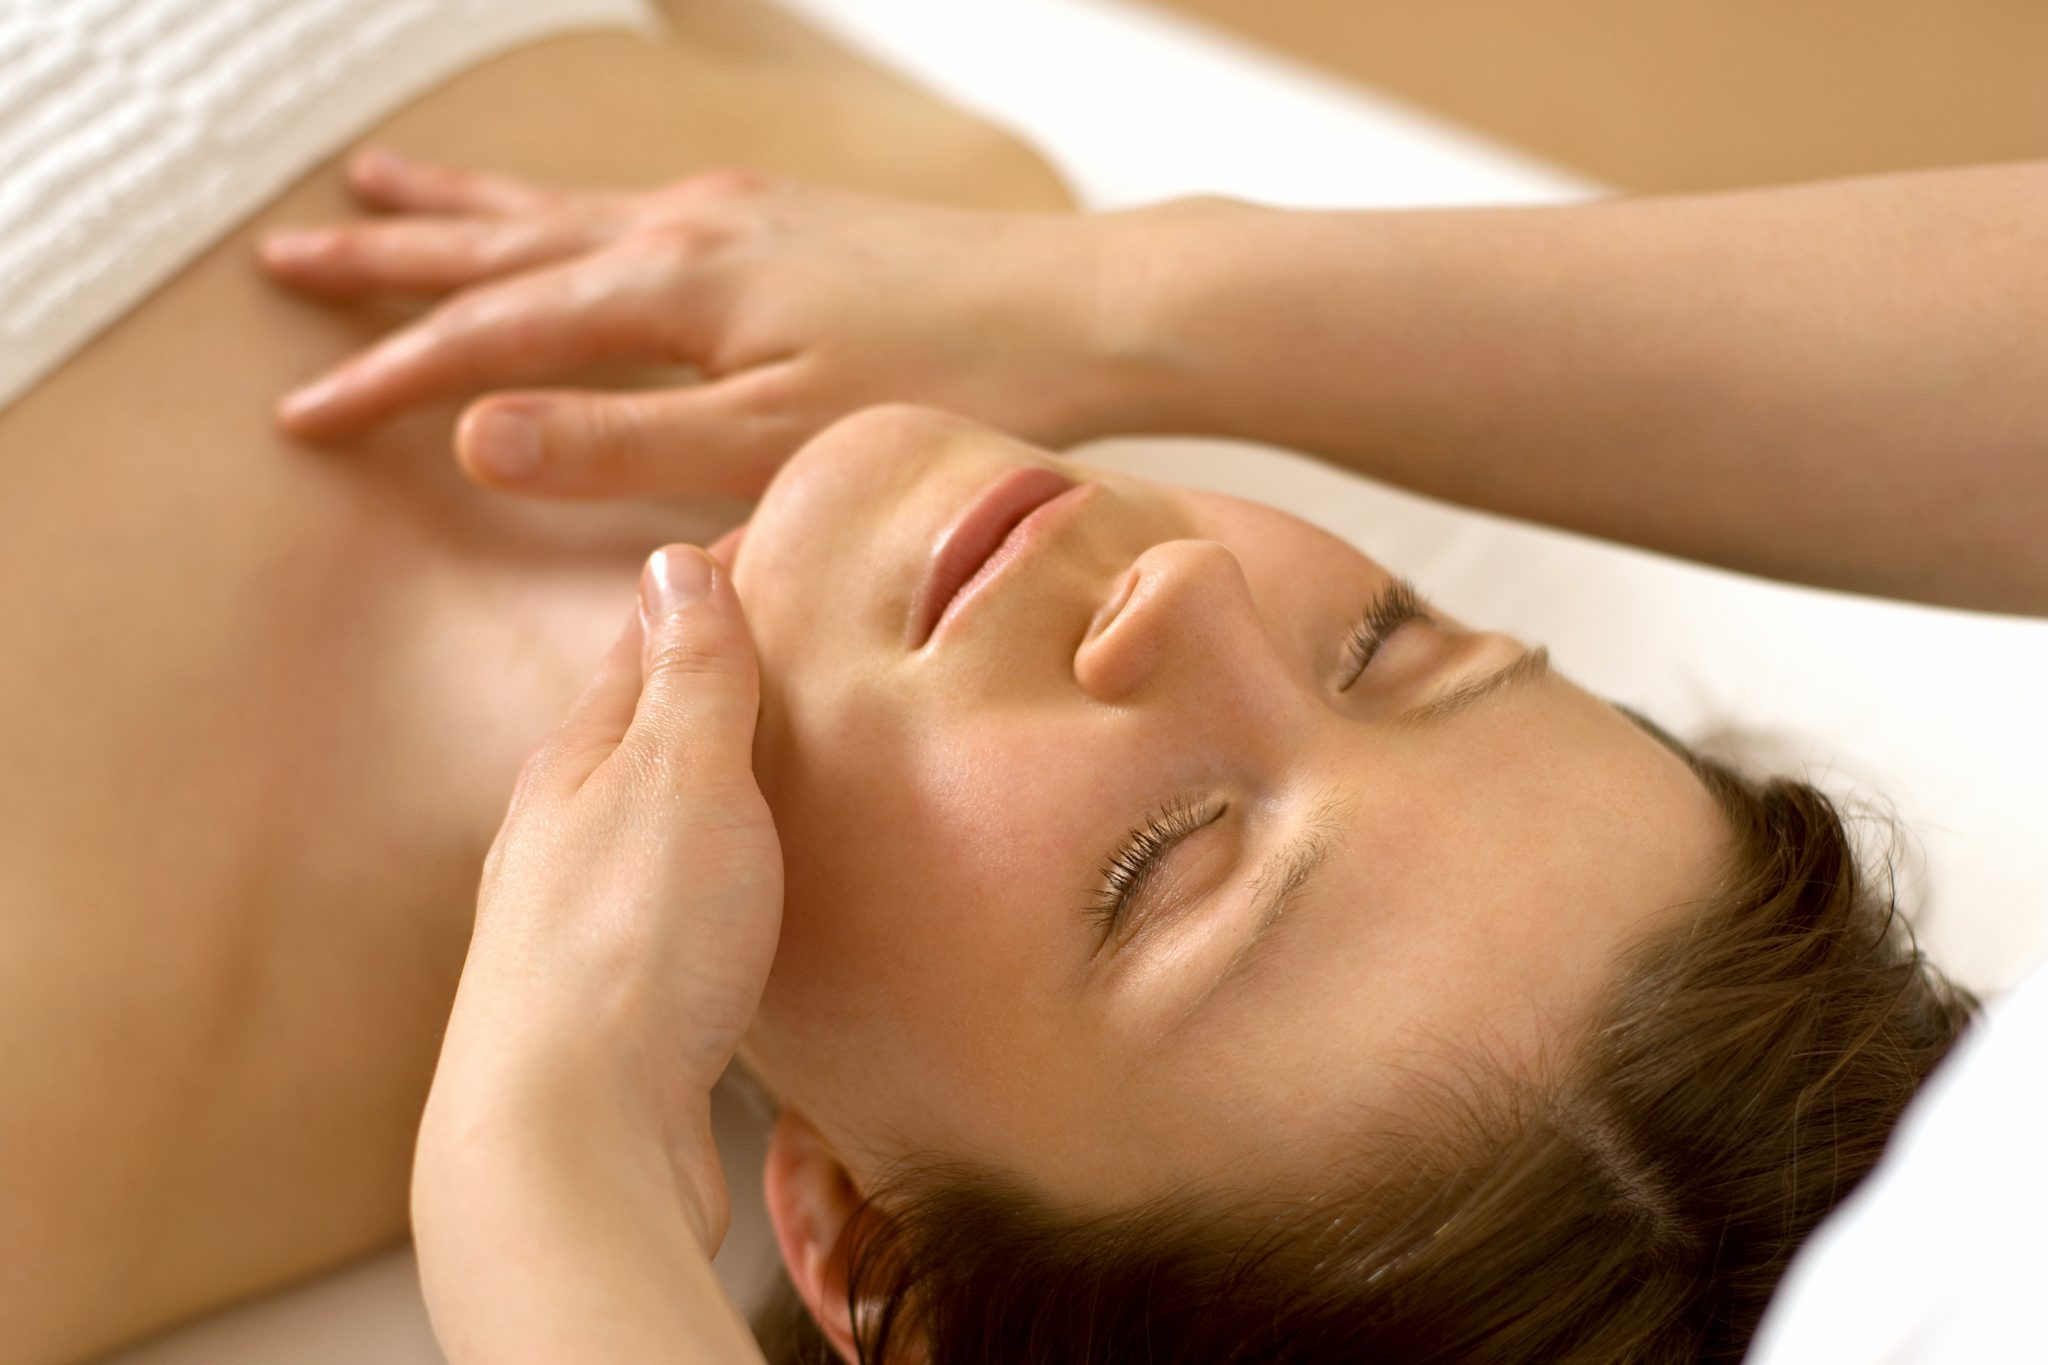 Face & Body Massage | Massagetechniken | Vital Massage | www.vitalmassage.at